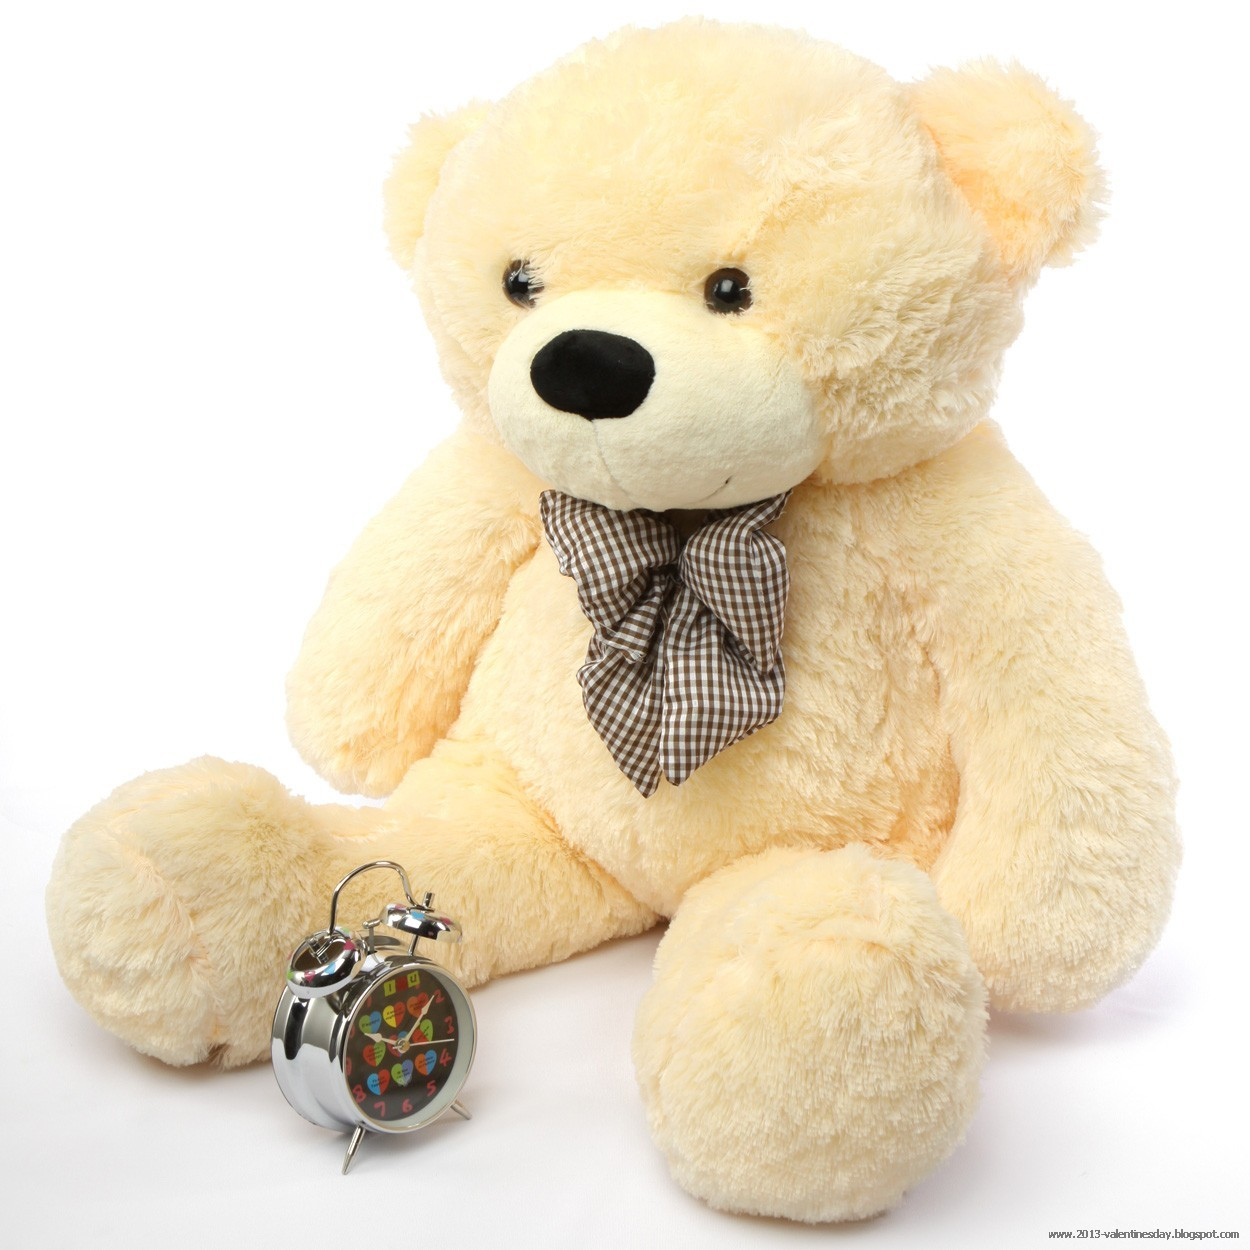 Valentines day Teddy bear gift ideas n HD wallpapers 1250x1250